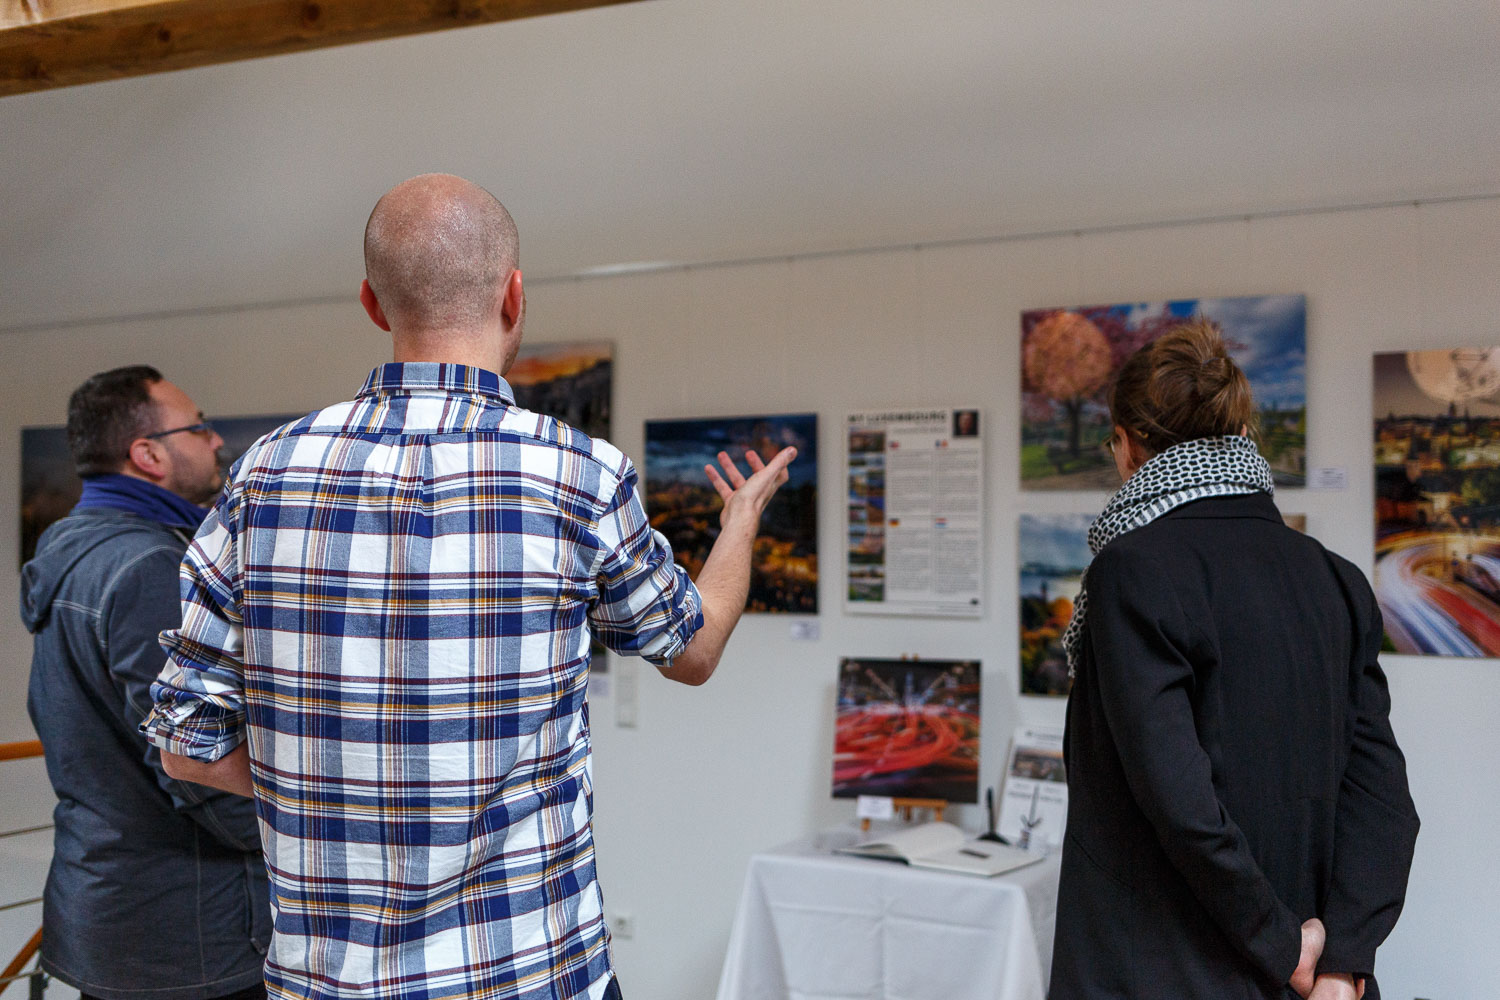 Photography exhibition at the Yves Radelet in Drauffelt in the North of Luxembourg - Exhibition at the Yves Radelet - Photography by Christophe Van Biesen - Luxembourg Landscape and Travel Photographer